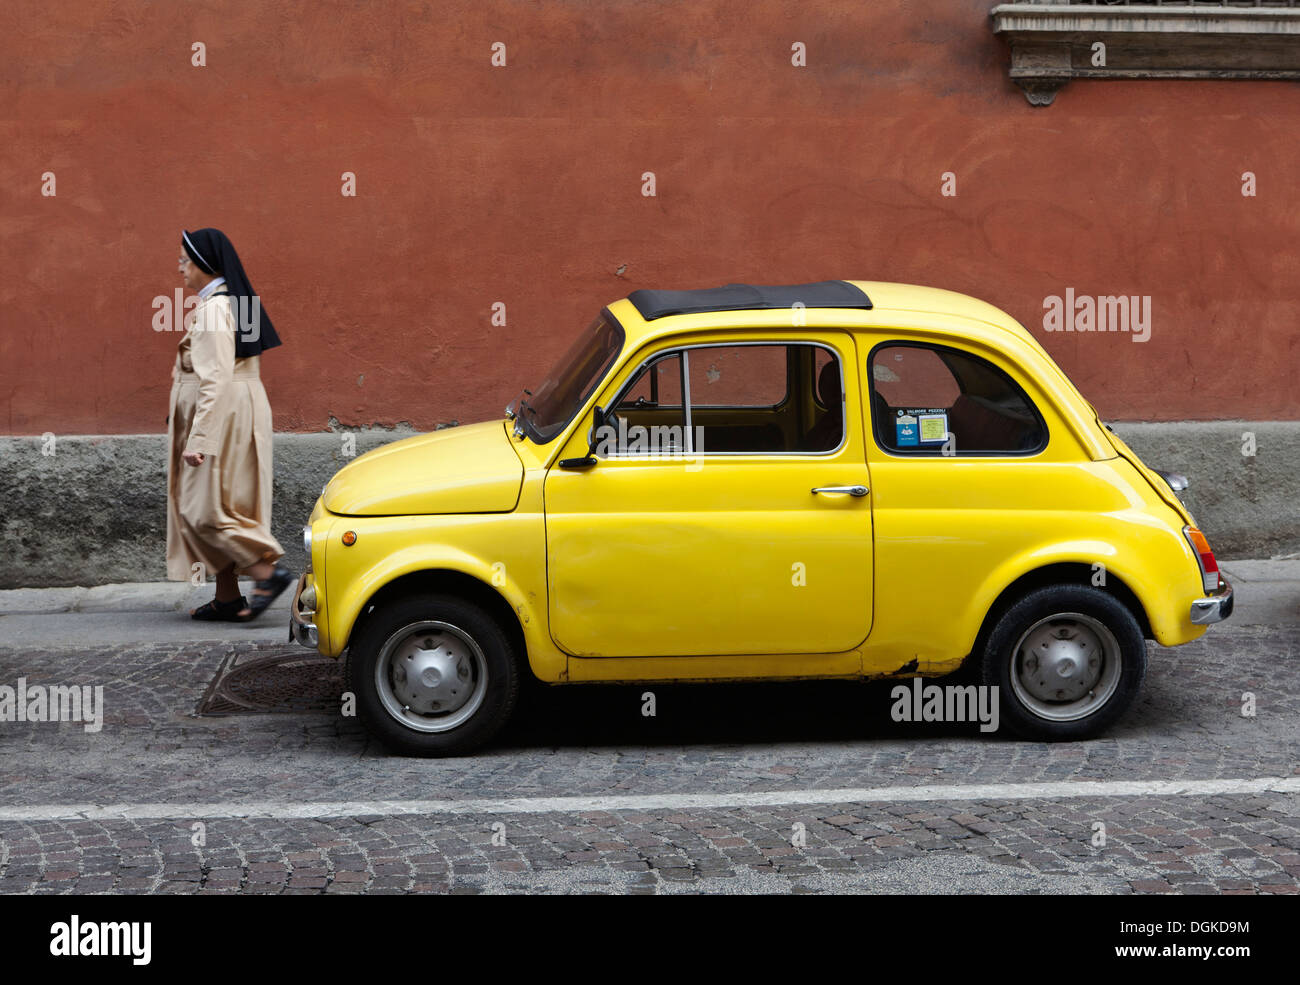 fiat 500 cars vintage cars stock photos fiat 500 cars. Black Bedroom Furniture Sets. Home Design Ideas